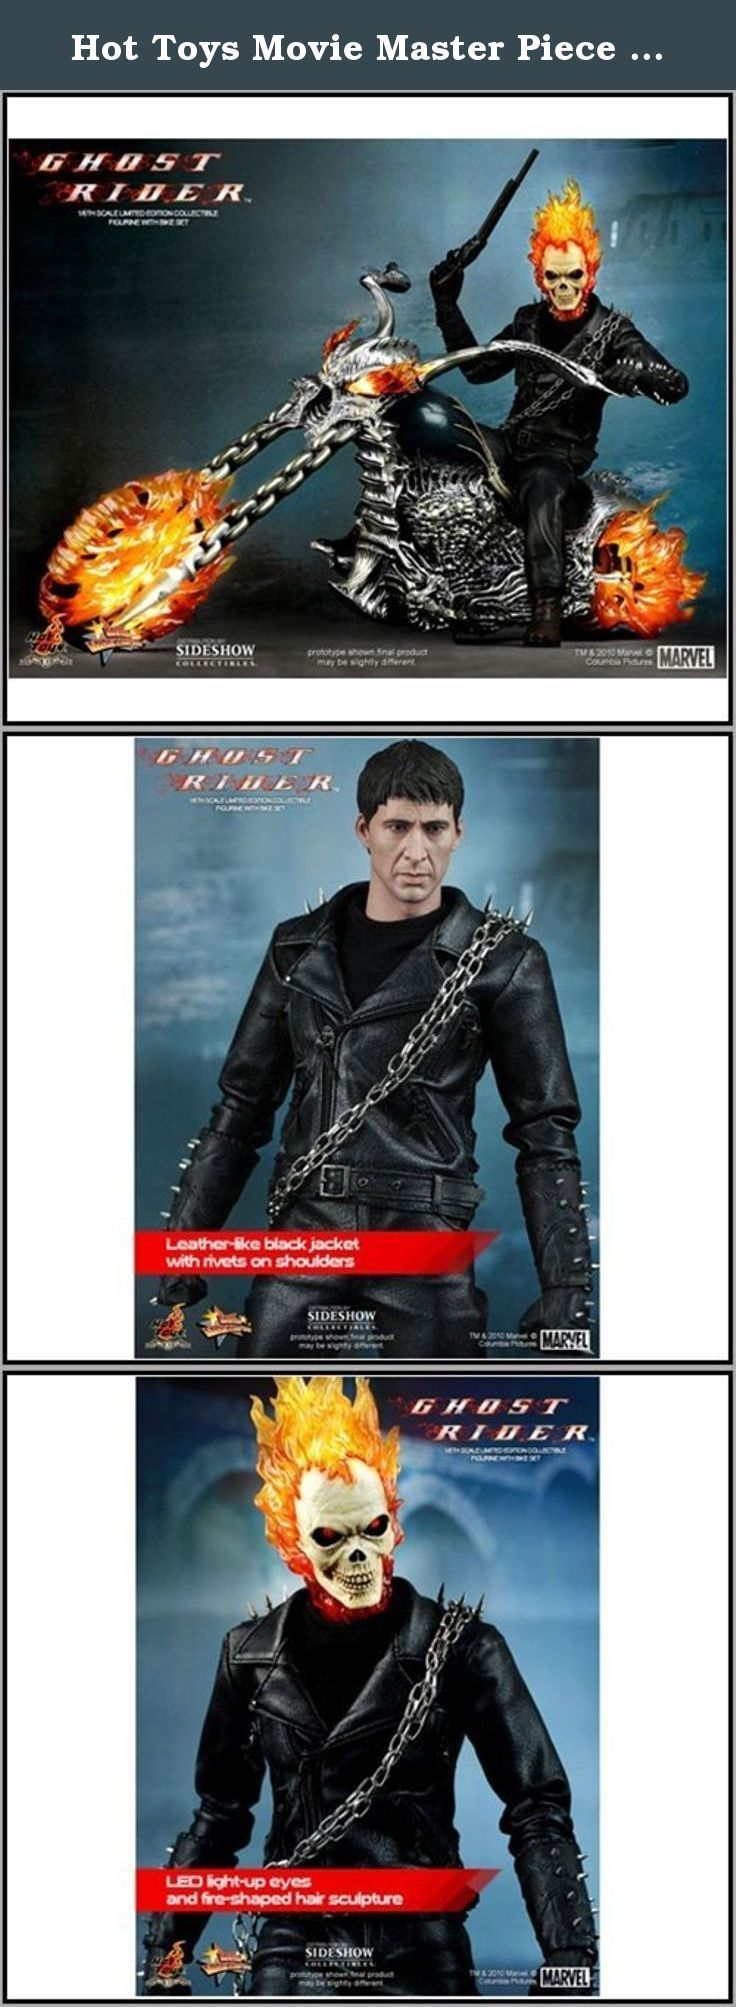 """Hot Toys Movie Master Piece Marvel Ghost Rider Limited Edition Figure With Hellcycle 12"""" Figure Set. Hot Toys' Movie Masterpiece Series, the 1/6th scale Ghost Rider Limited Edition Figure with Hellcycle from the Ghost Rider movie. The highly detailed Ghost Rider collectible is specially crafted based on the image of Nicolas Cage in the movie, highlighting the newly sculpted head and skull, light-up functions on skull and detailed weapons. The set also comes with a motorcycle with light-up..."""